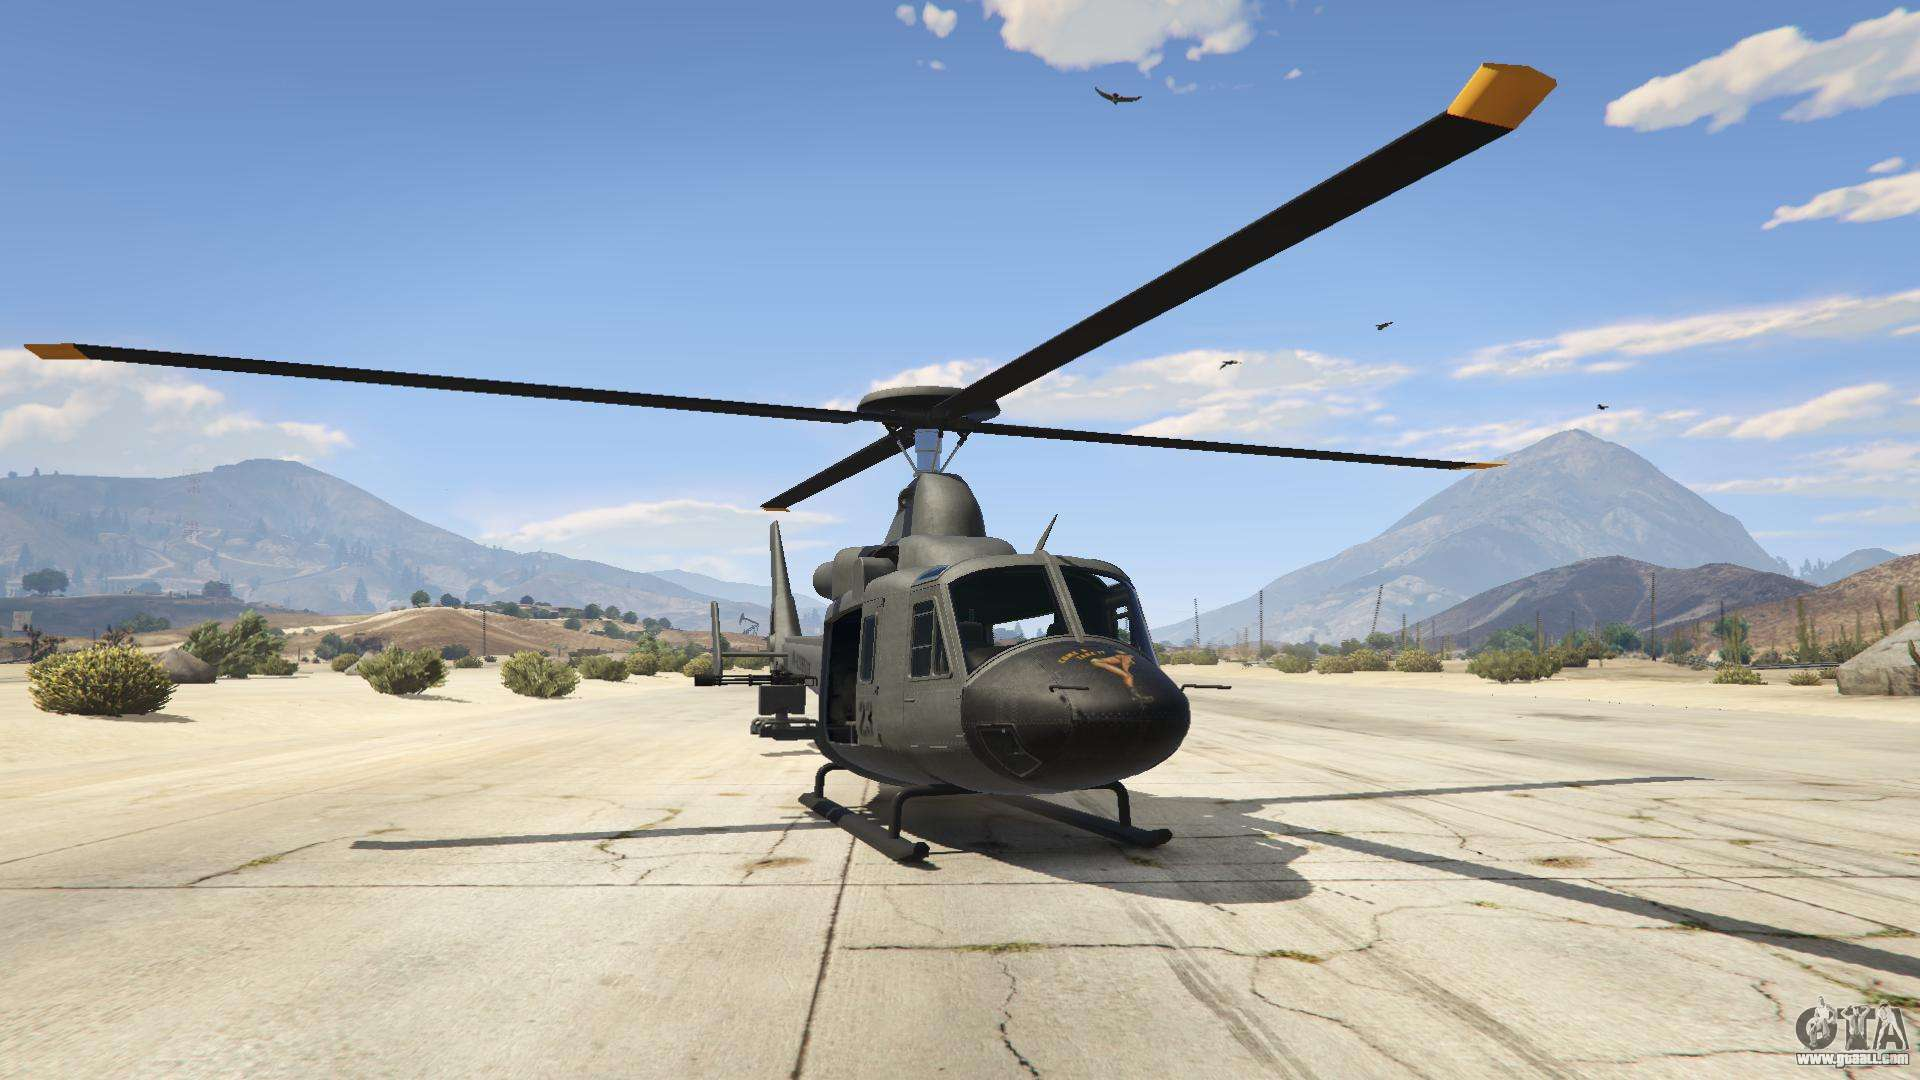 gta 5 cheat codes ps3 helicopter with 27866 Buckingham Valkyrie Mod 0 on Ps4 moreover Watch together with Gta 5 Cheats Xbox 360 icizs besides Bugatti Cheat Code Gta 5 Xbox 360 in addition GRAND THEFT AUTO LIBERTY CITY XBOX CHEATS.